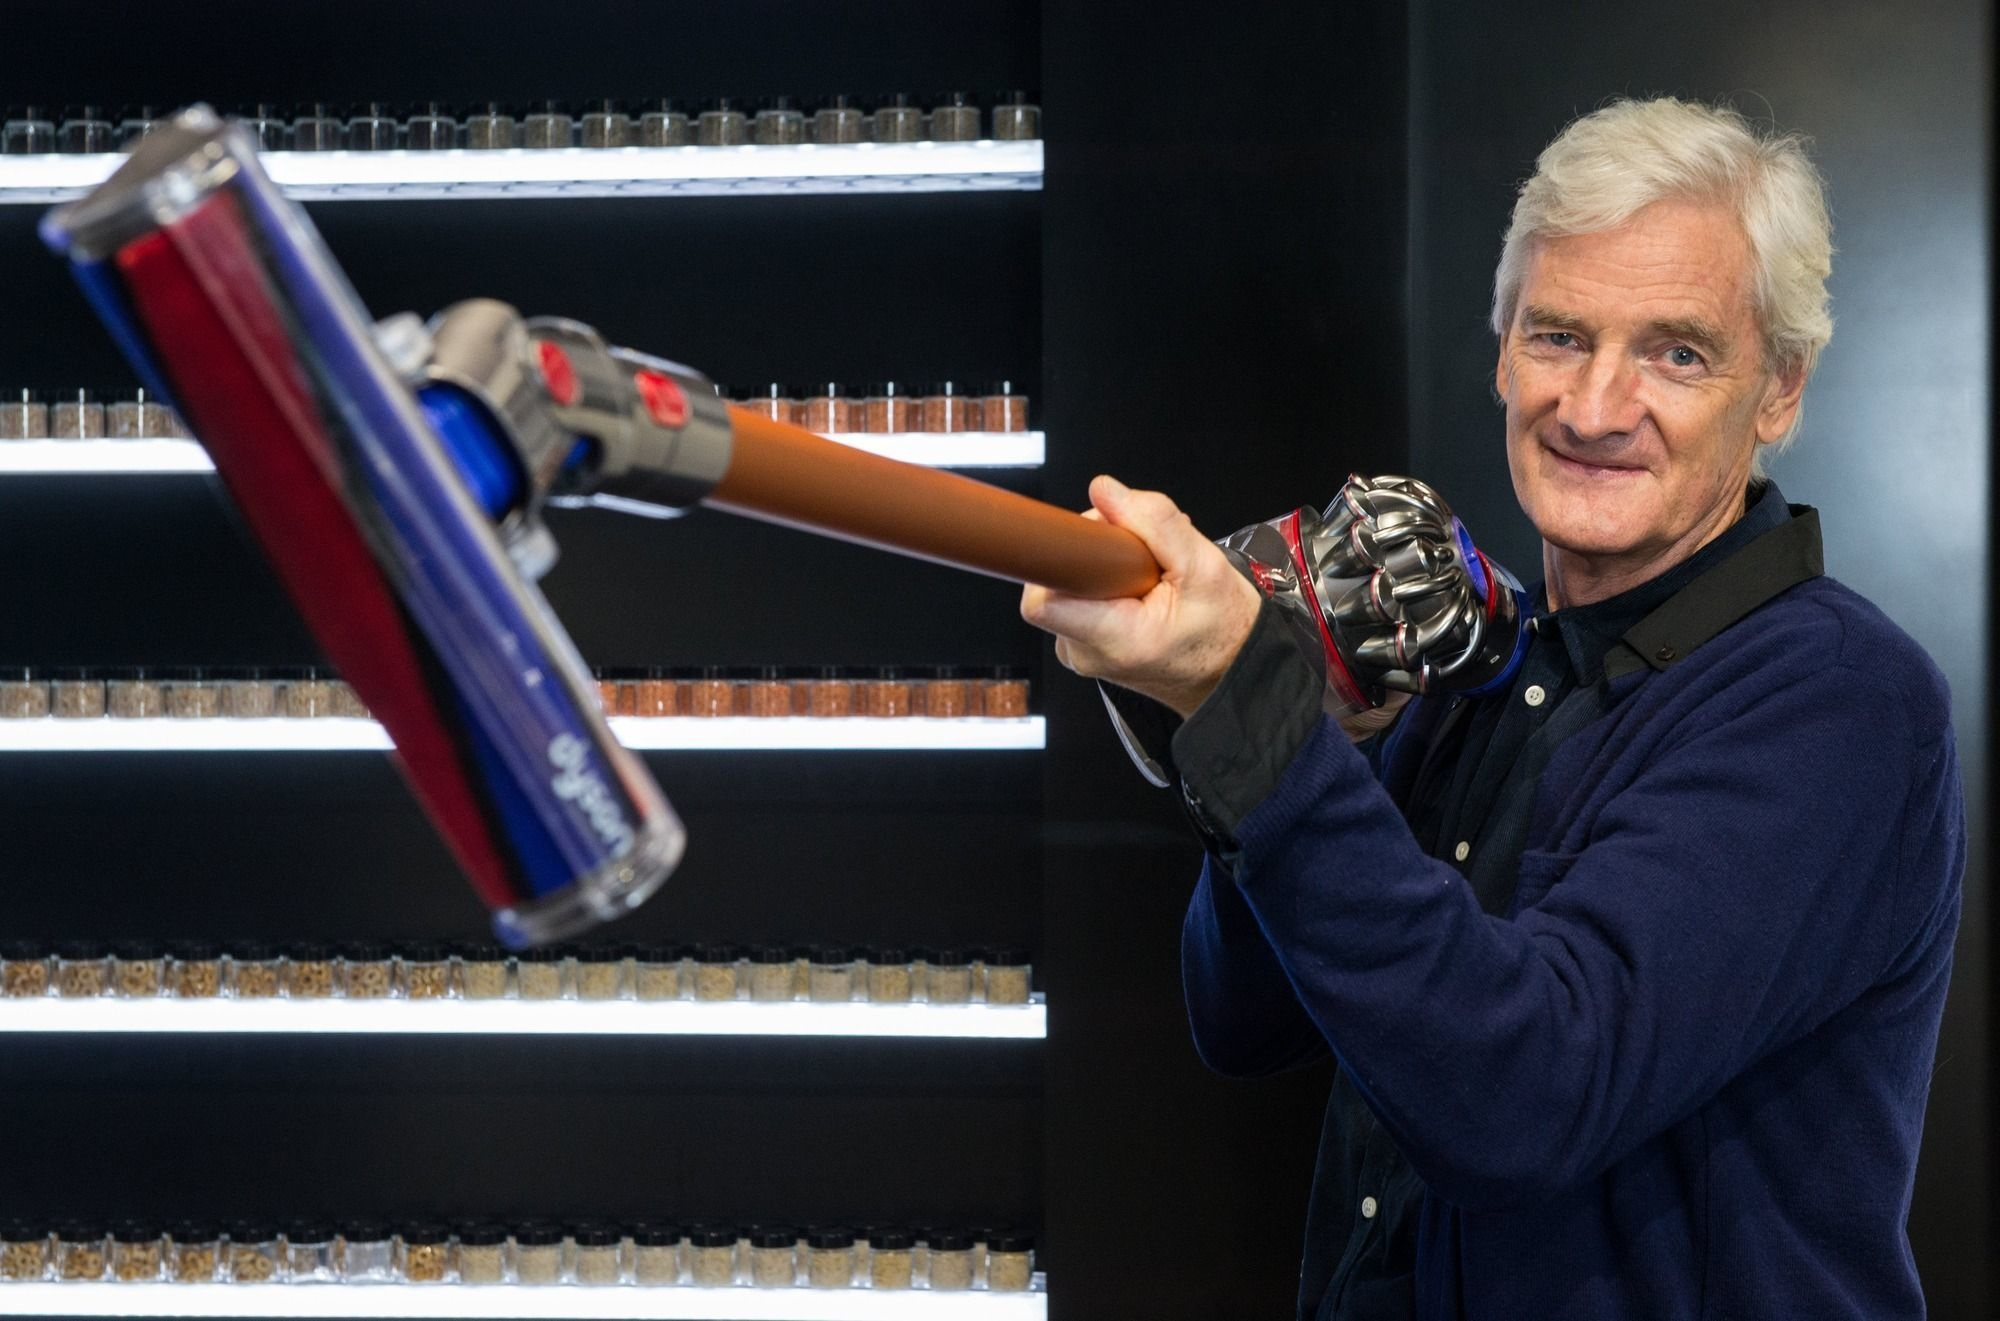 Sir James Dyson , ISOPIX - The Times/News Syndication